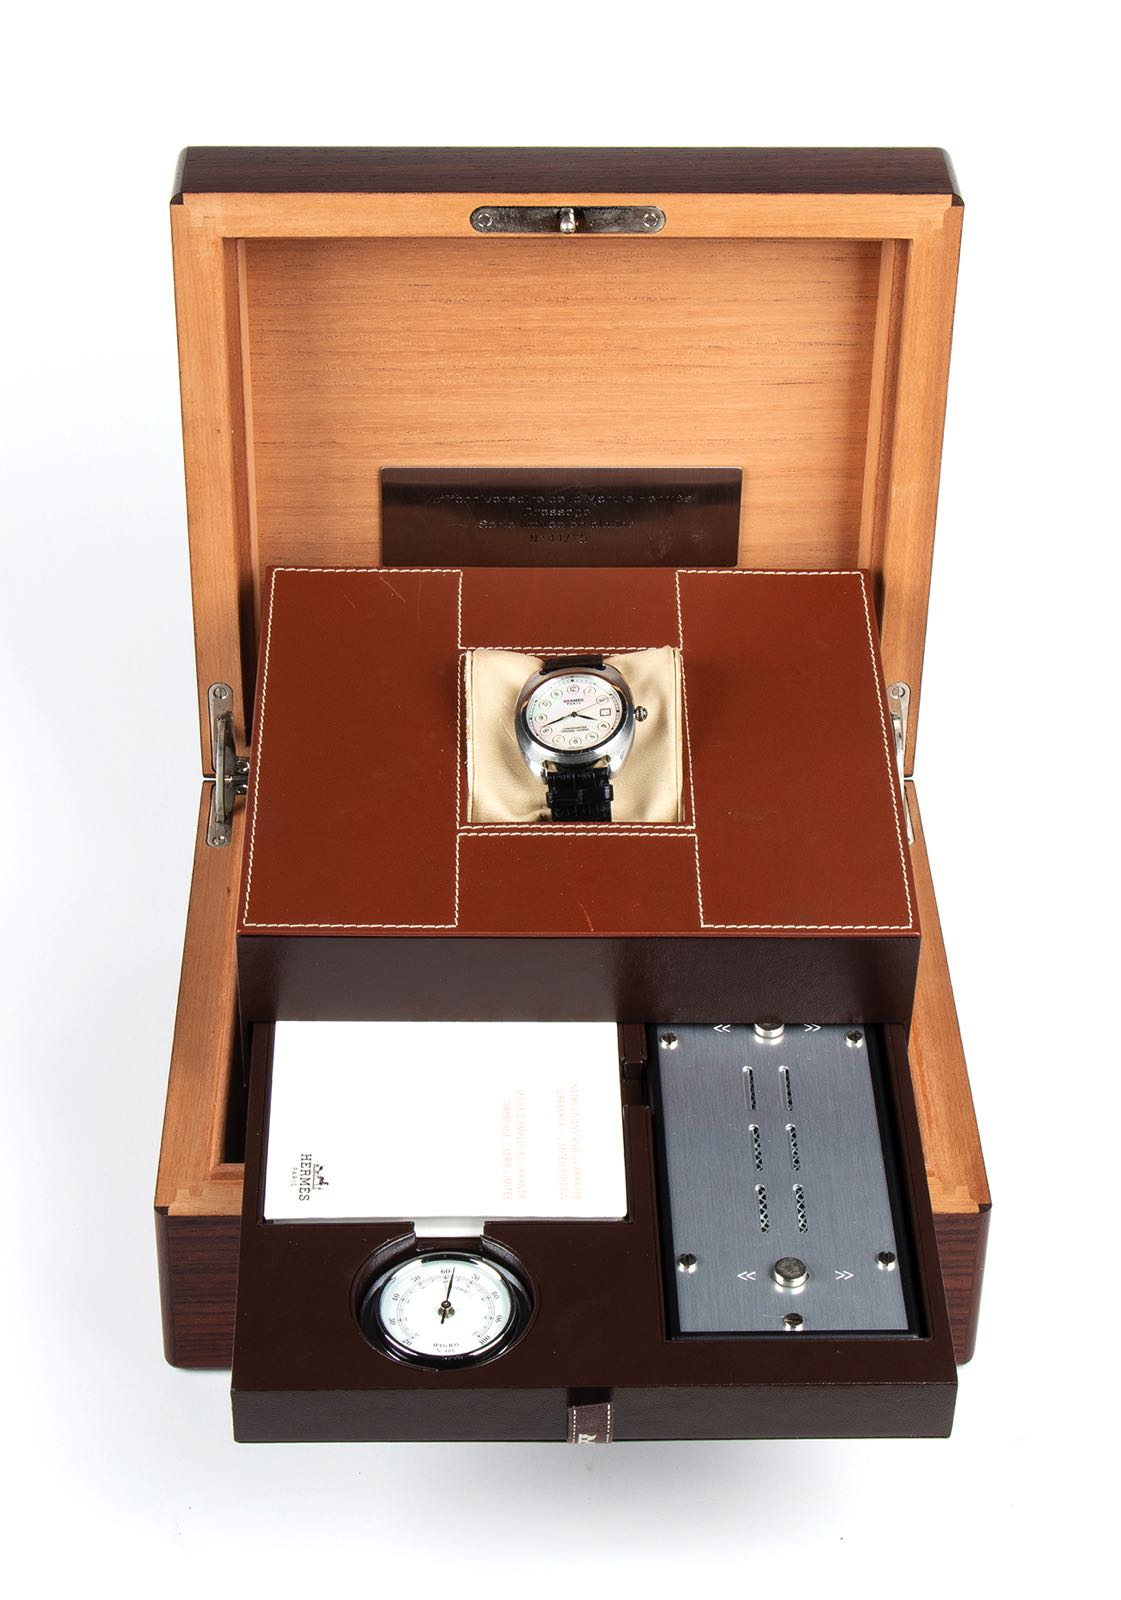 Hermes Dressage Platin, limited edition 75 pieces. 2003 - Image 3 of 3